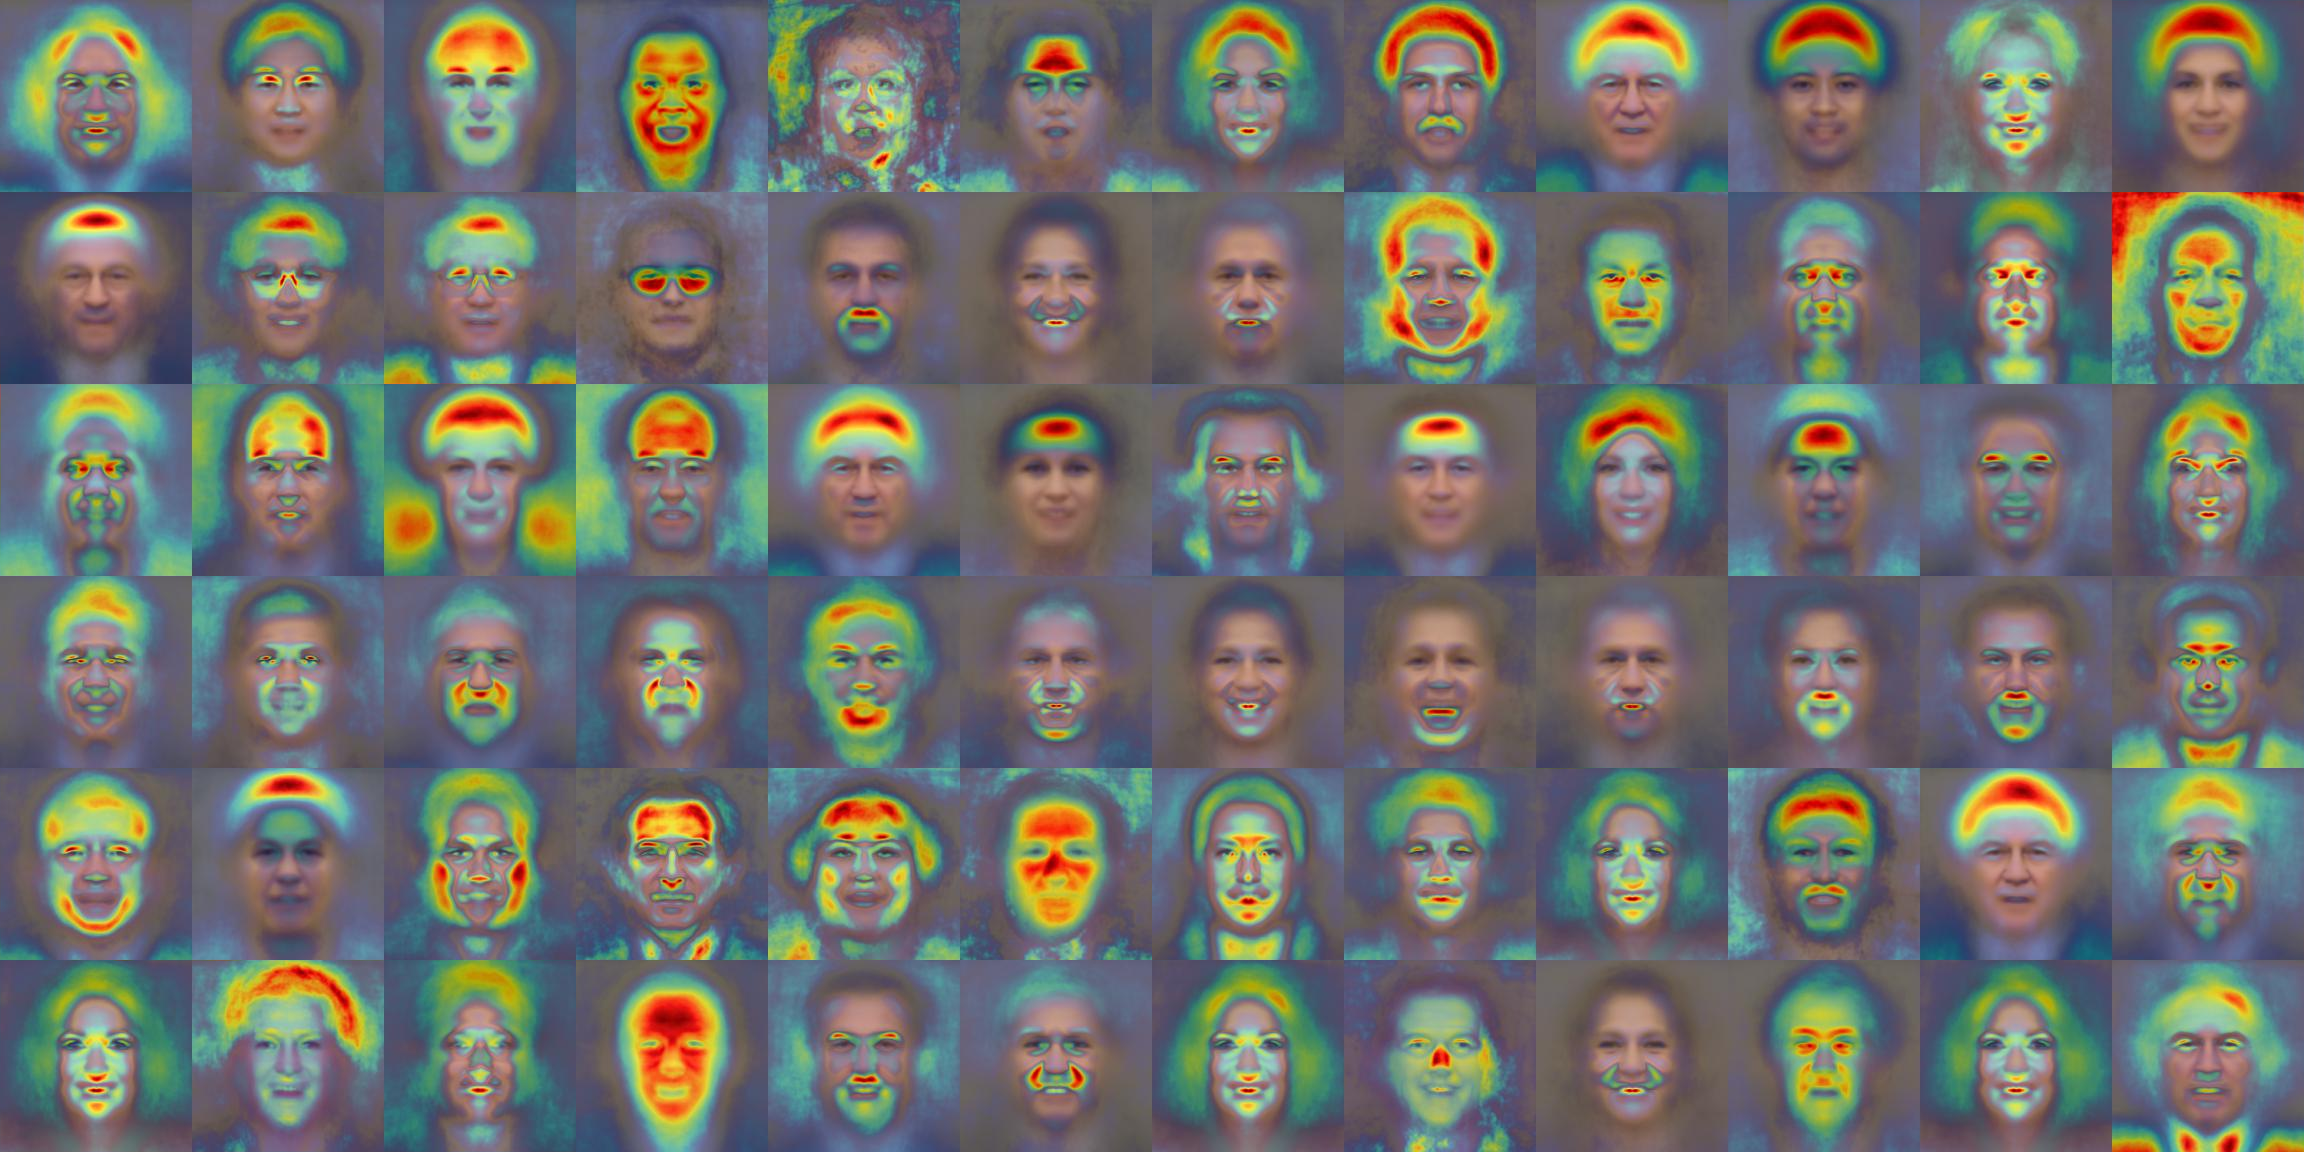 Grid of 70 averaged faces for different face attribute categories, with overlaid heatmaps indicating significant regions.